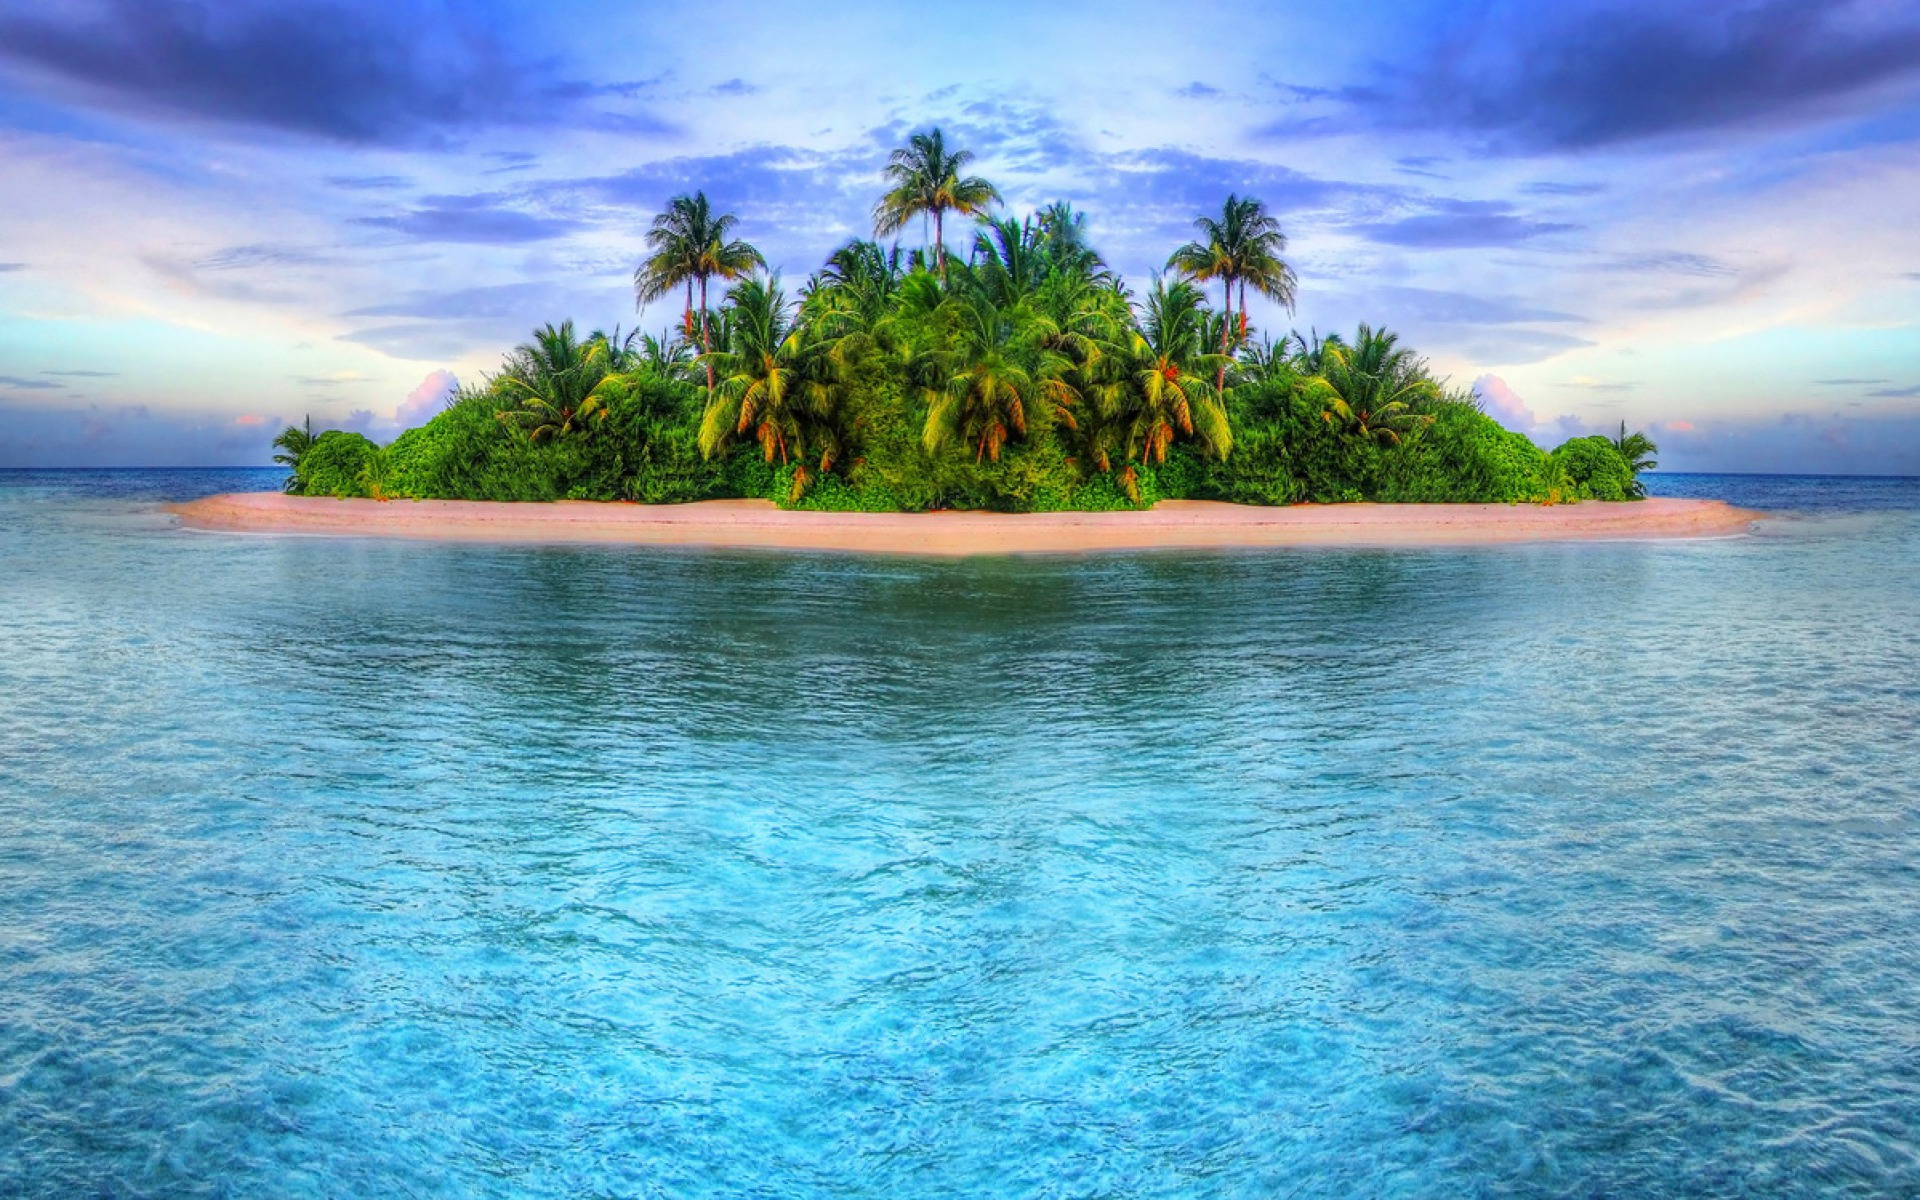 Hd Tropical Island Beach Paradise Wallpapers And Backgrounds: Tropical Island Stock Photos